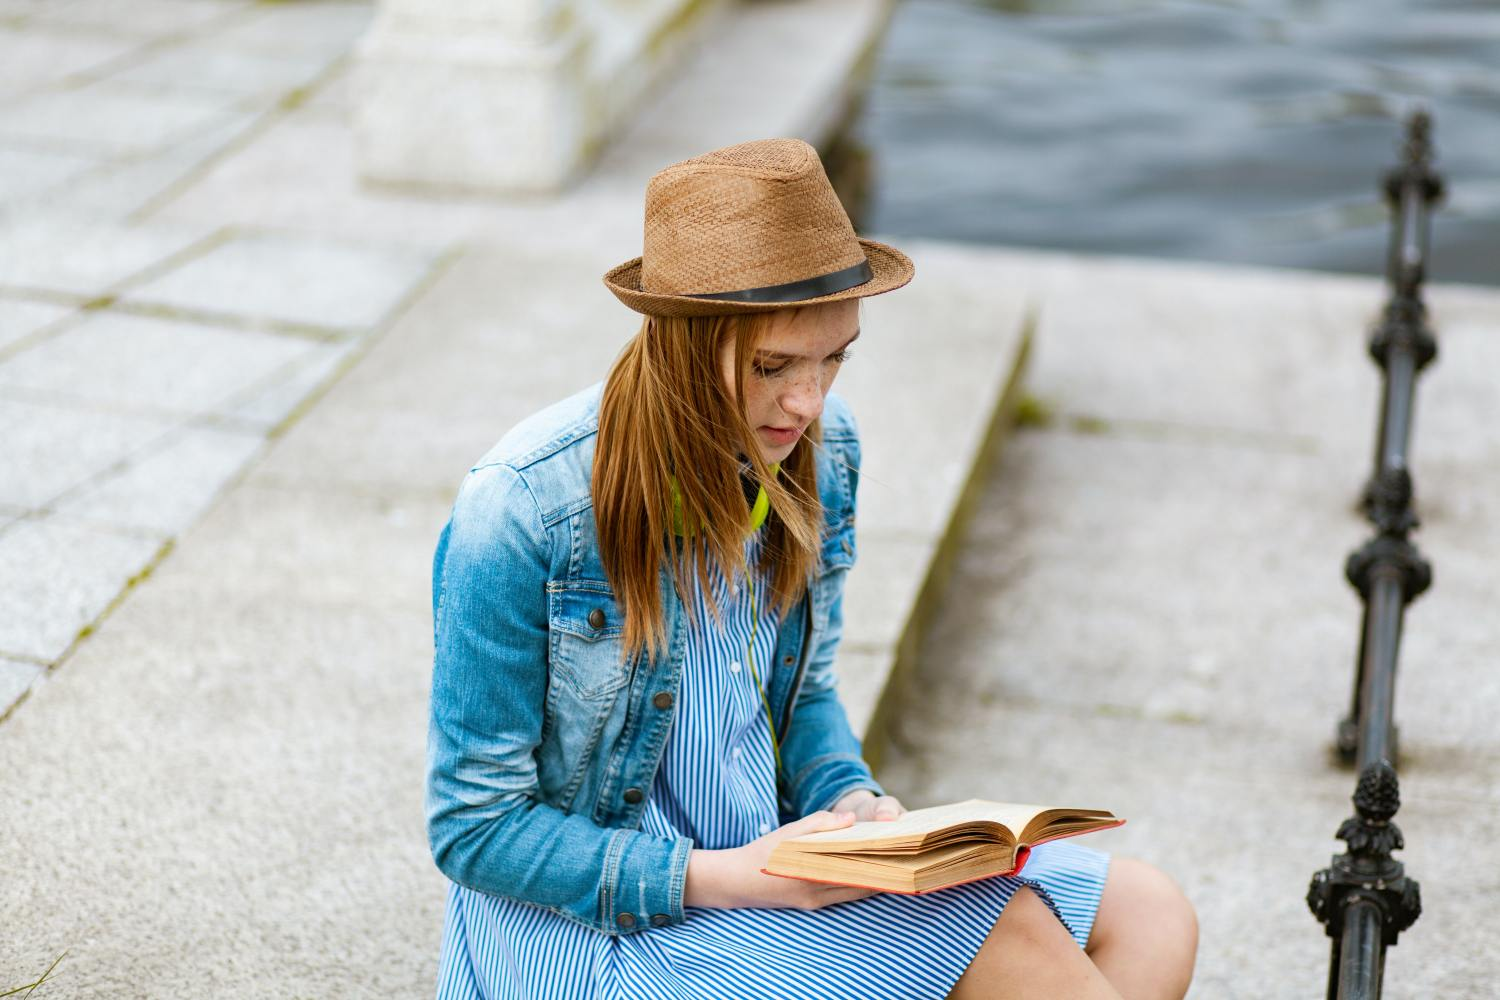 10 Important Universal Truths That You Need To Repeat To Yourself Now And Again